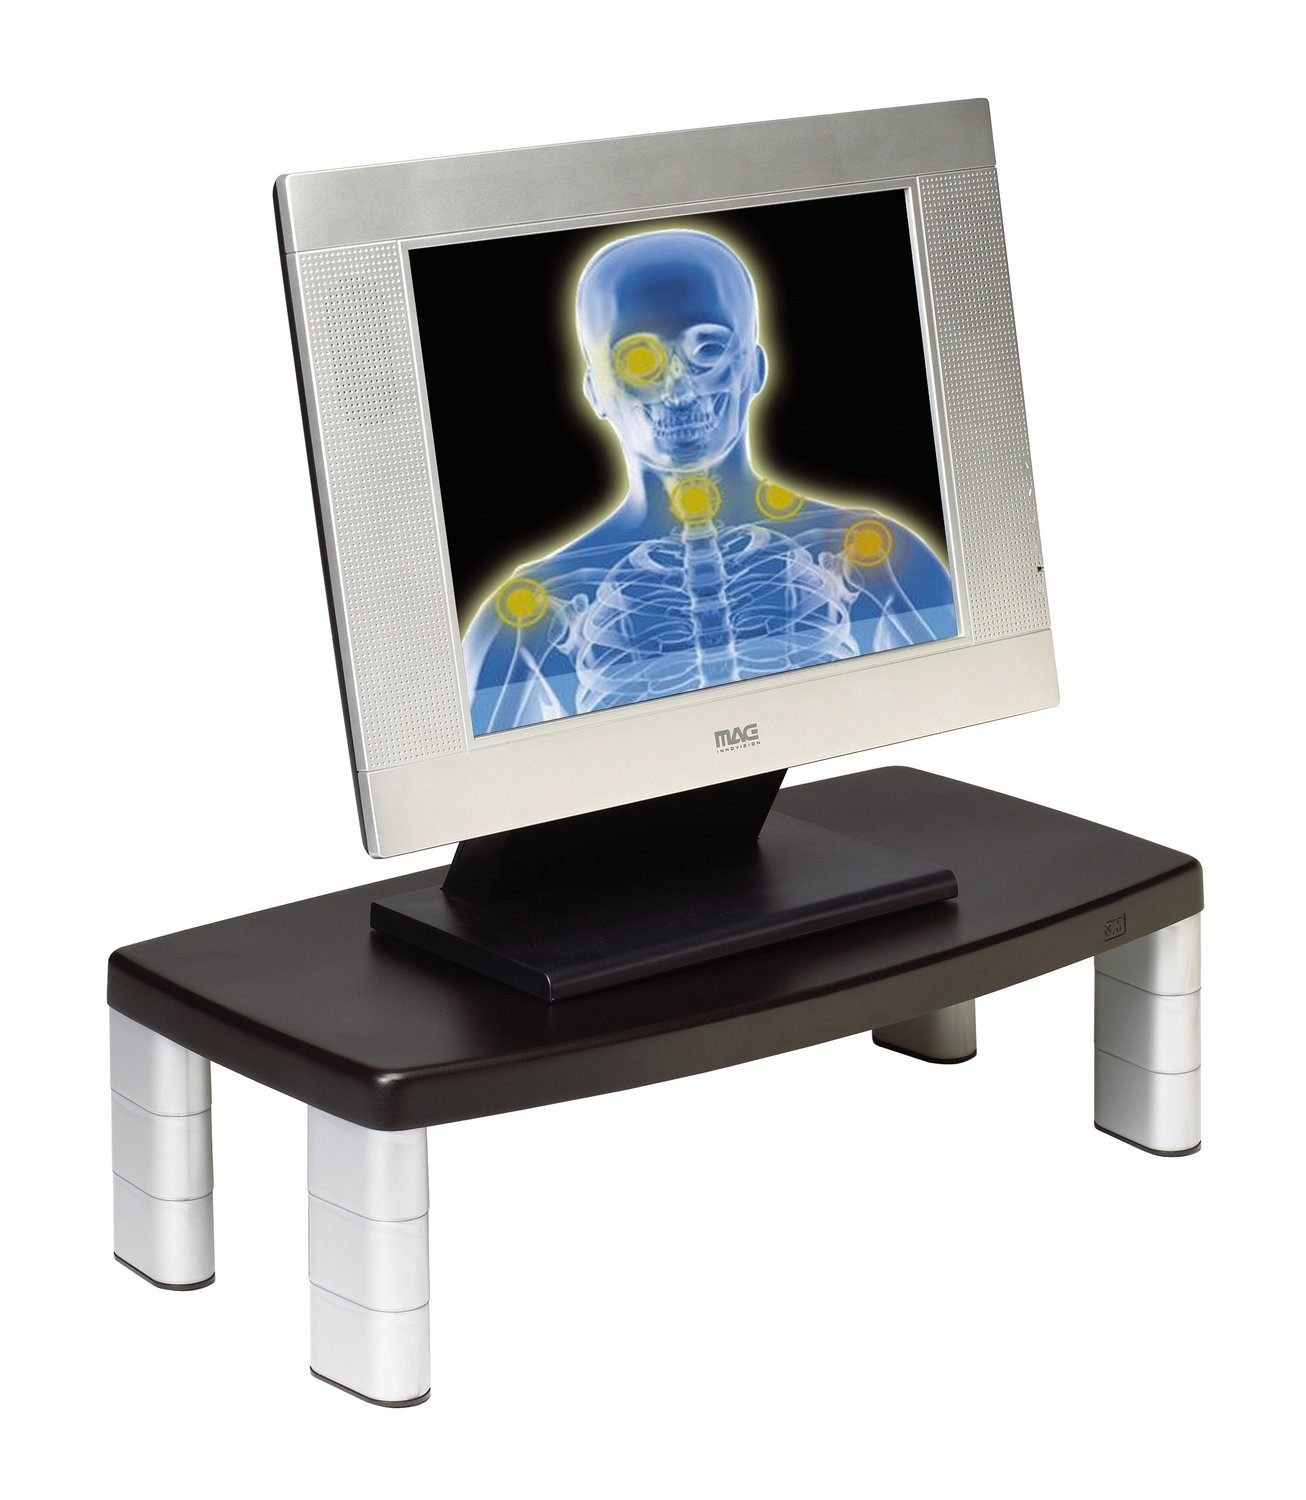 3M Adjustable Monitor Stand, Three Leg Segments Simply Adjust Height From 1 to 5 7/8, Sturdy Platform Holds Up to 80 lbs, 11-inch Space Between Columns for Storage, Silver/Black (MS80B) 3m - Supplies Monitor Accessories